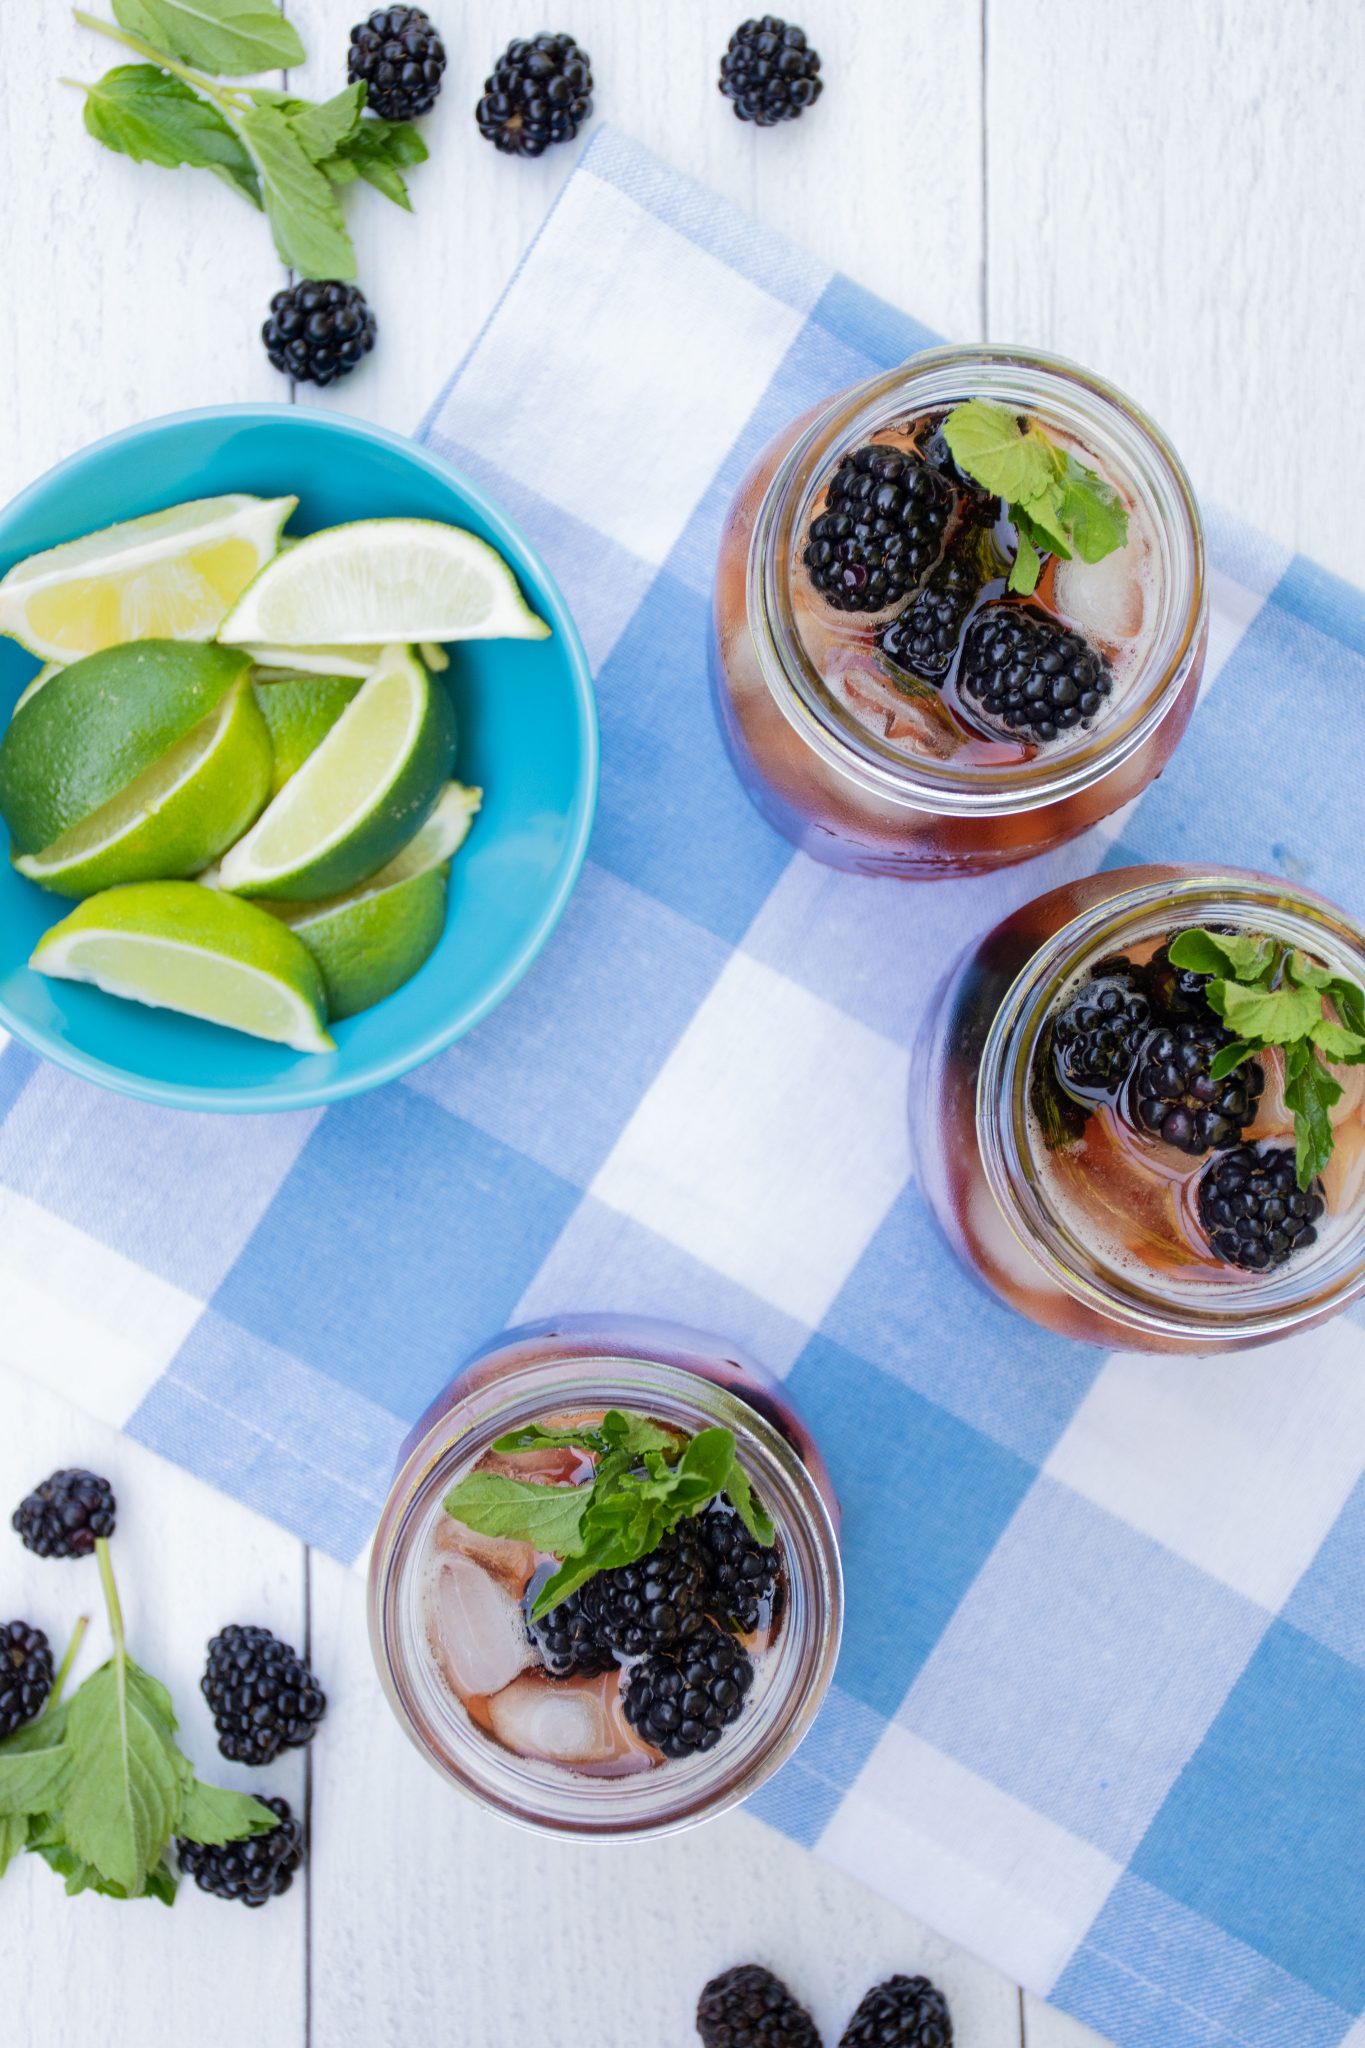 Overhead shot of iced tea in 3 Mason jars, with ice, blackberries, and mint. Small bowl of lime slices to the side.